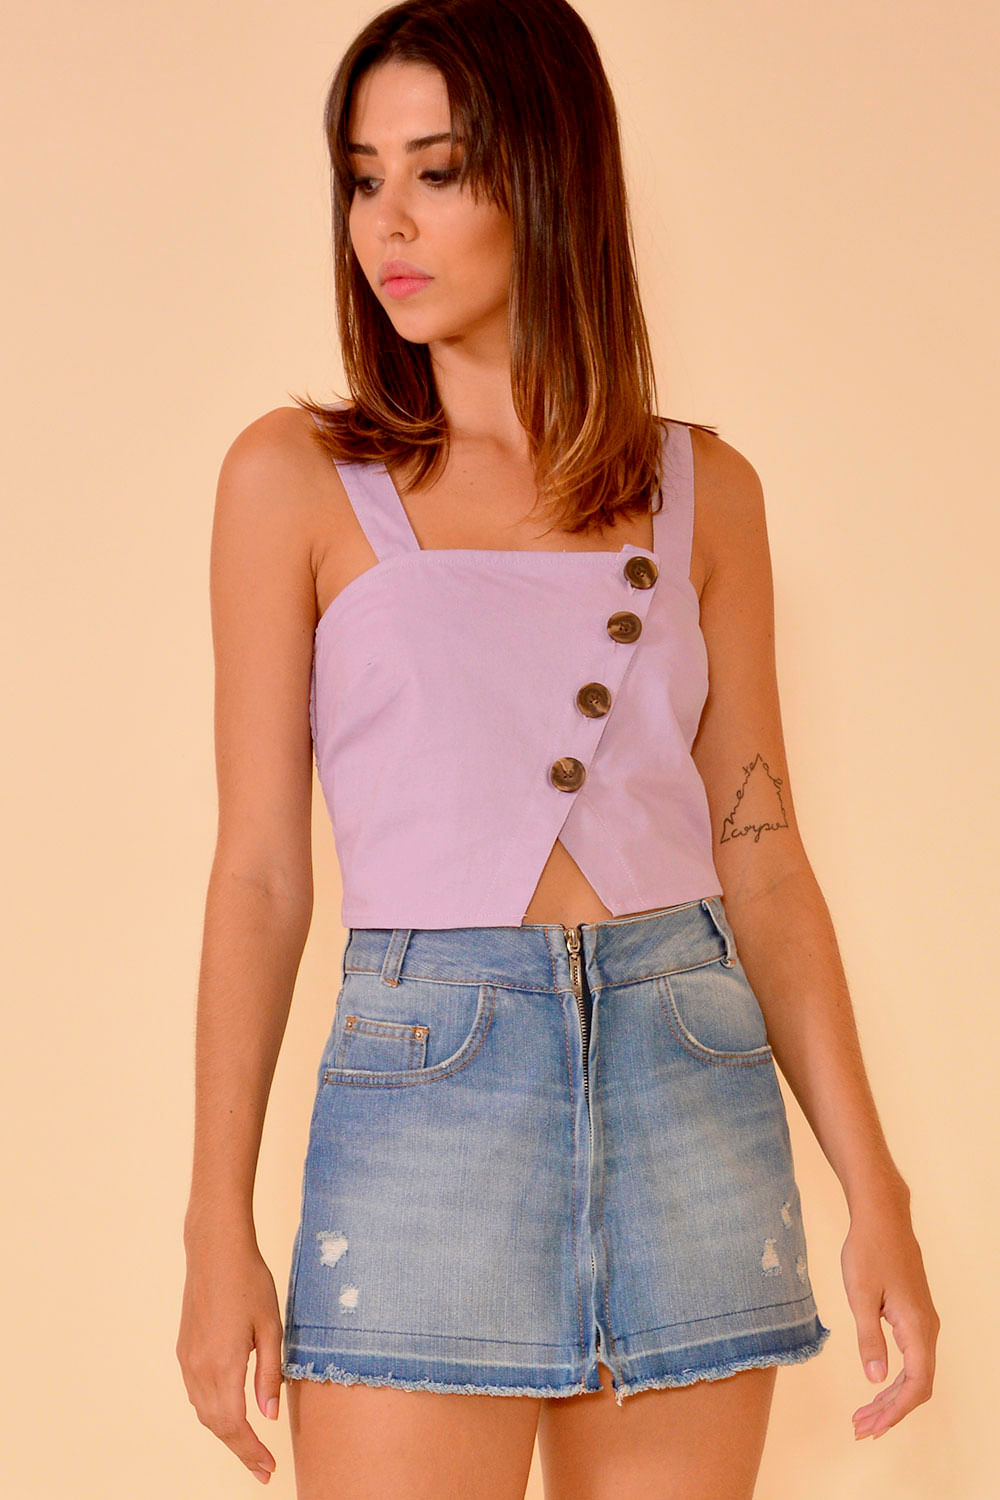 02042398_1010_1-BLUSA-CROPPED--BOTOES